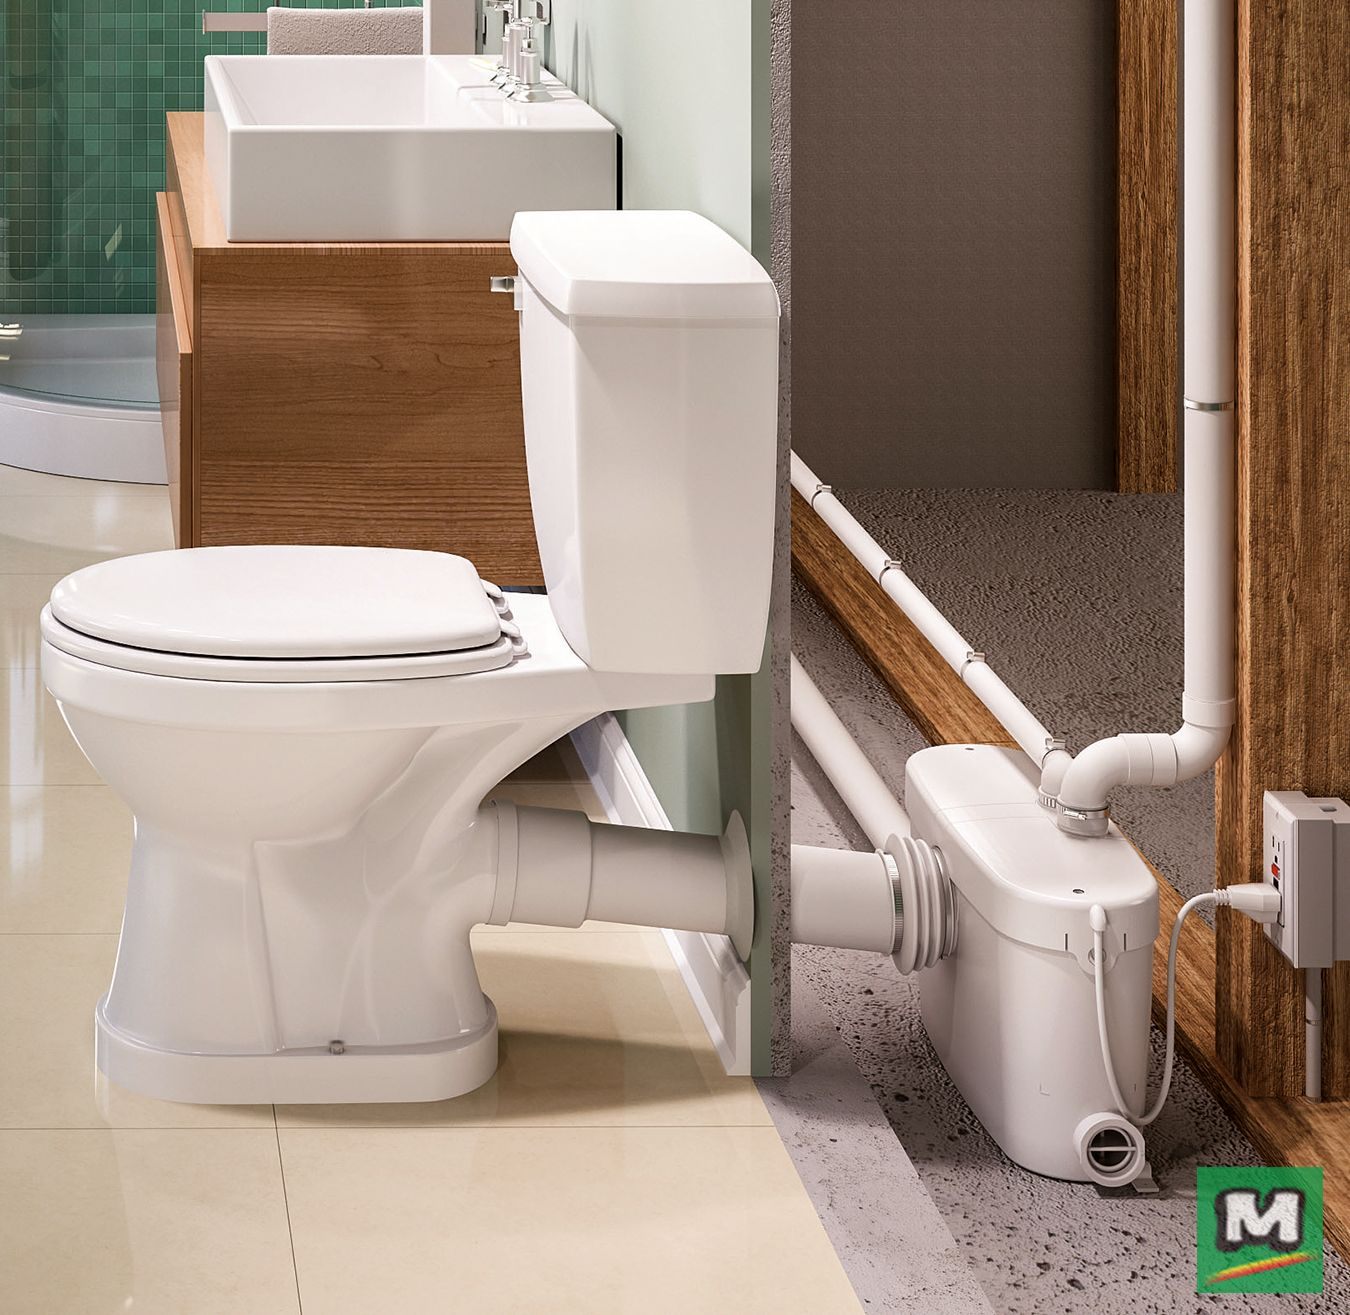 hight resolution of install a basement bathroom without the need to break concrete the sanipro macerating toilet system is a breeze to install virtually anywhere with a power